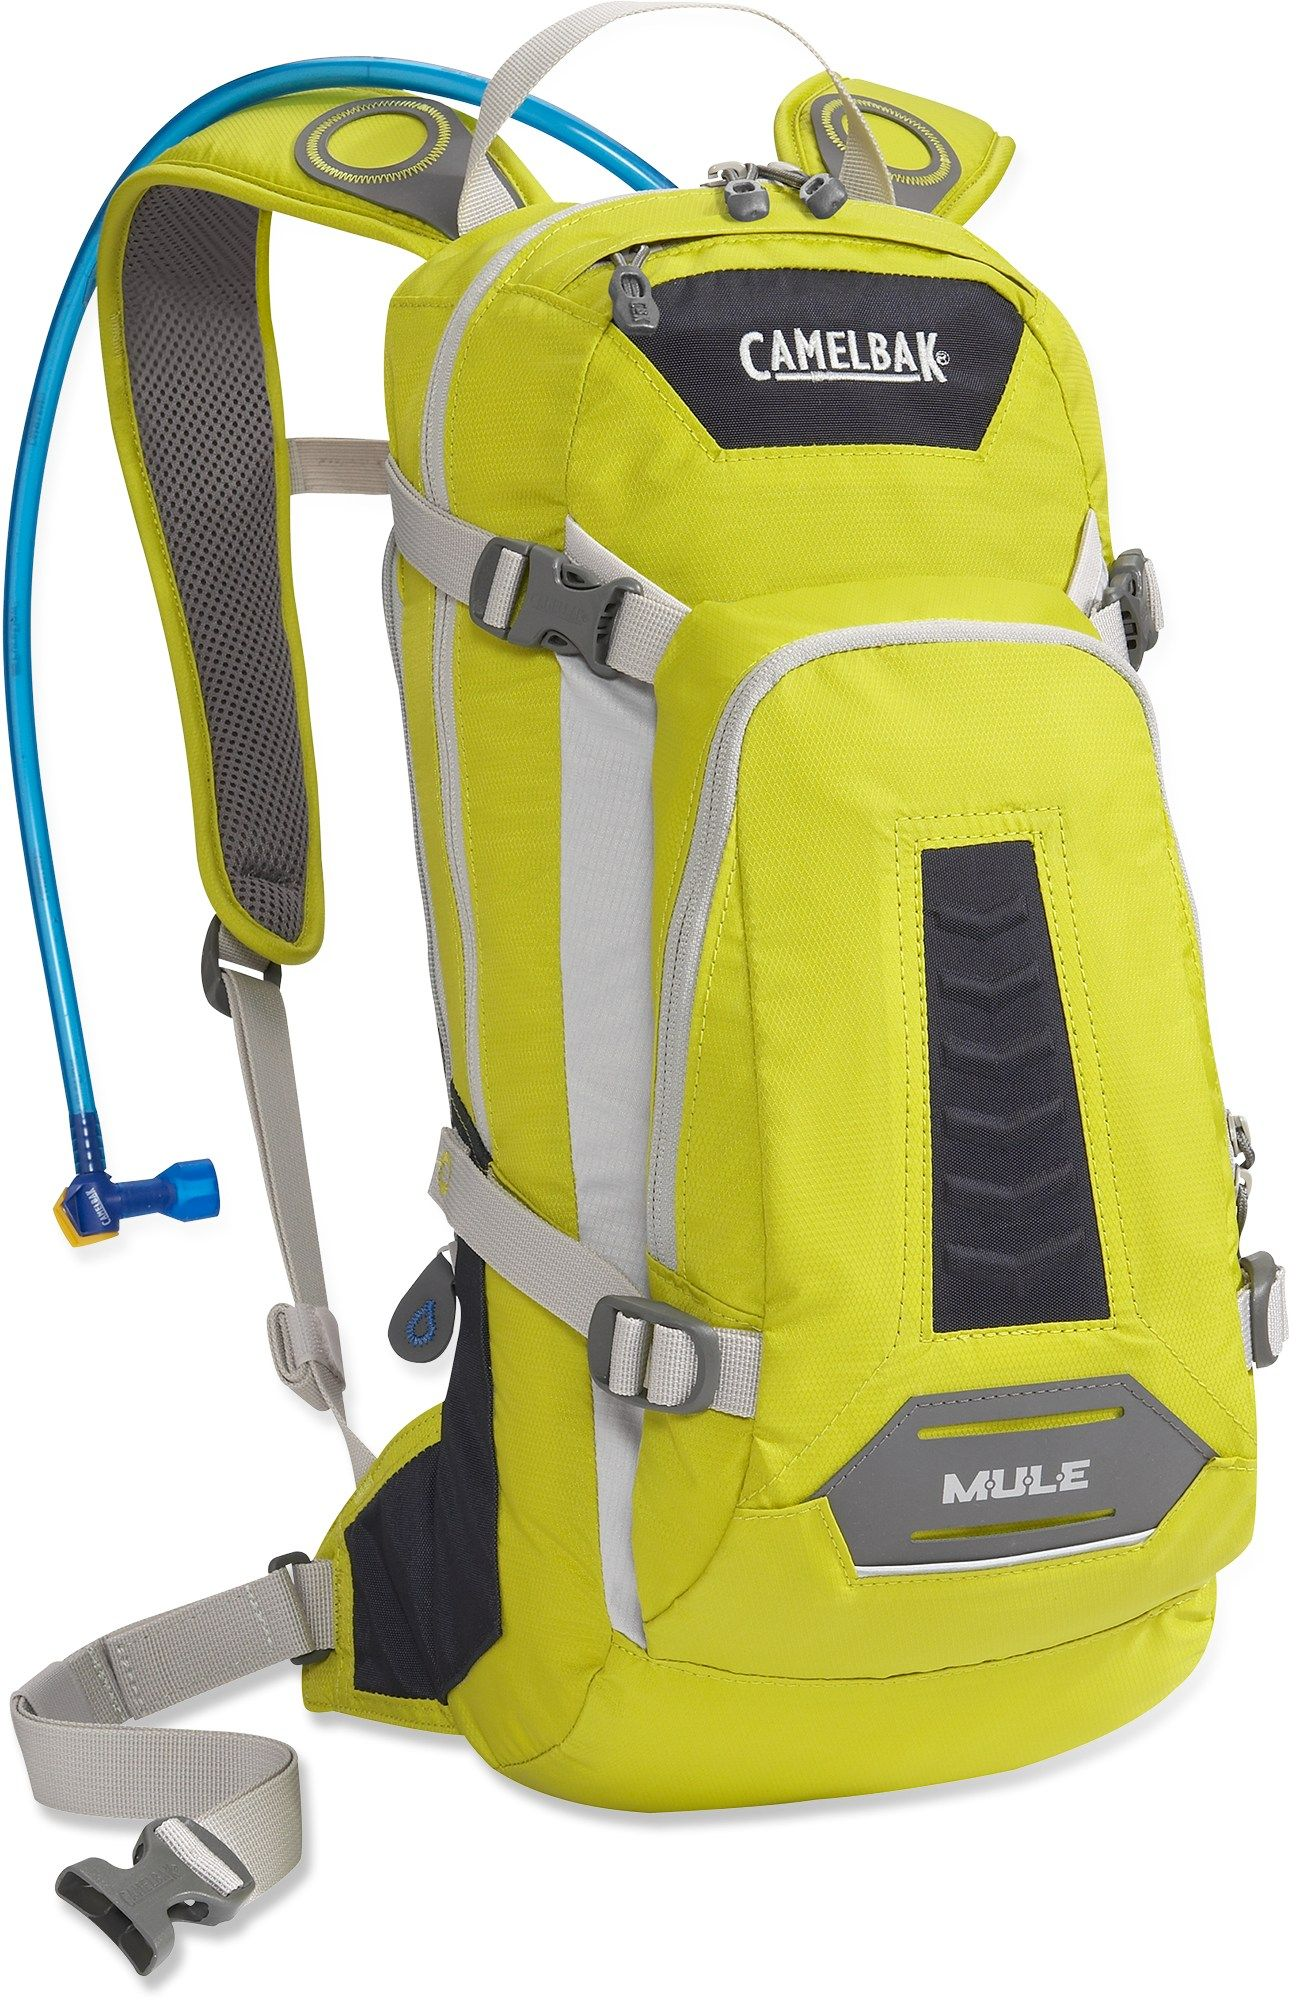 9d646115032 CamelBak M.U.L.E. Hydration Pack - 100 fl. oz. - 2012 Closeout - Free  Shipping at REI-OUTLET.com